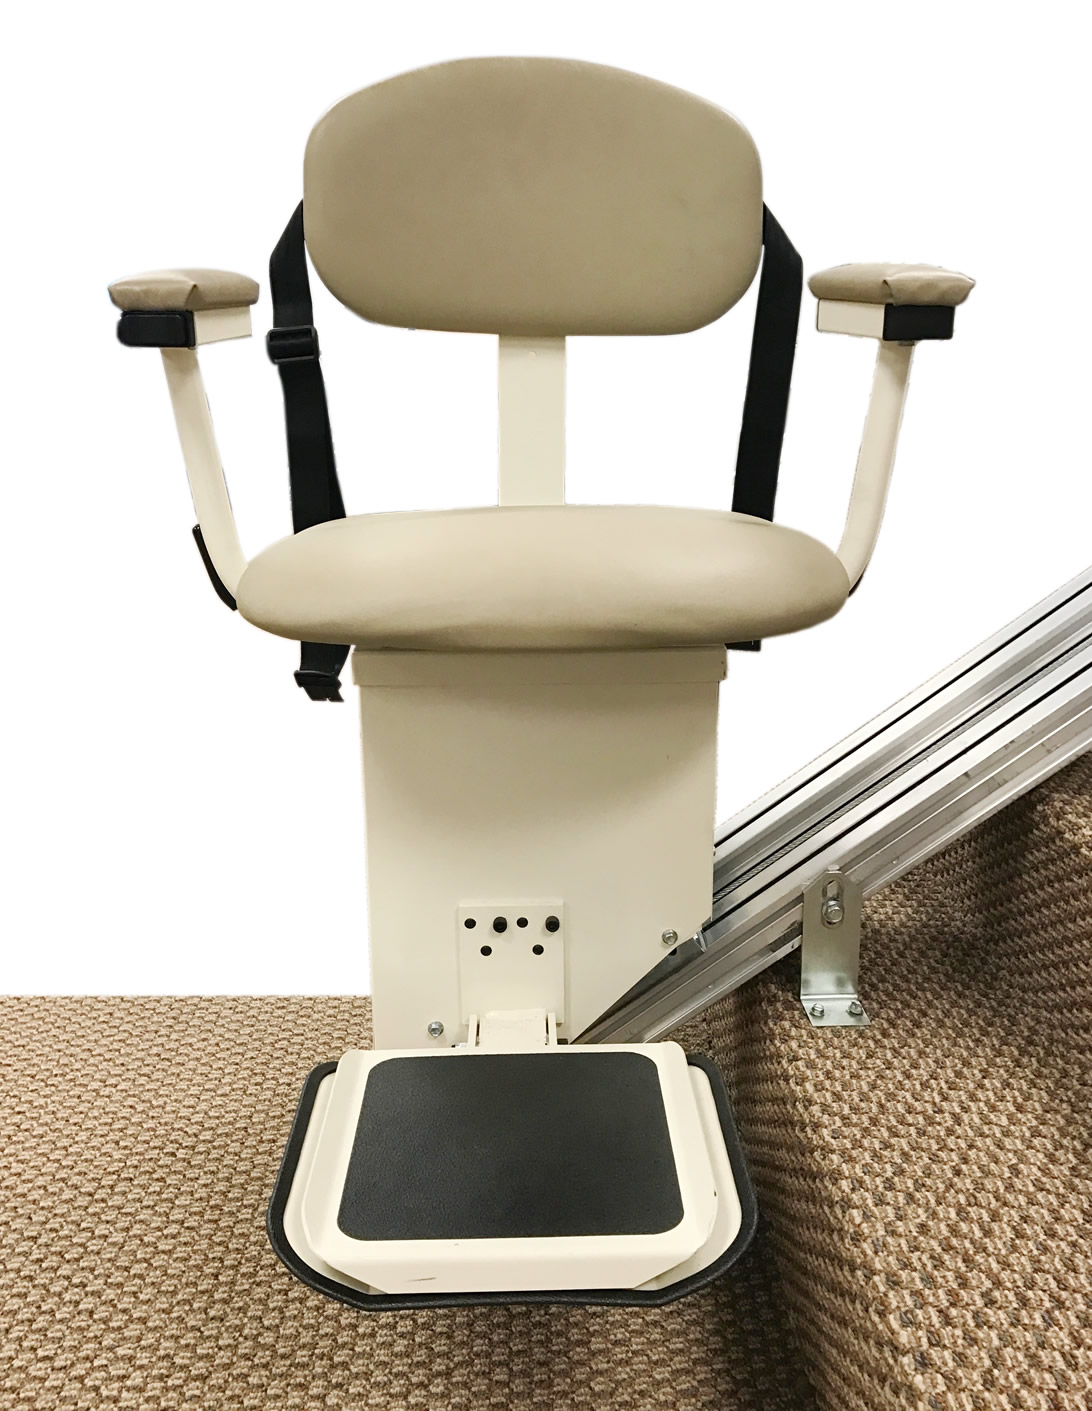 by small living dimensions size lifts recliners covered work pay cushions patient talk scorpion ro computer wheelchair room recliner does to furniture conference design amp how for of r lift lets aza full wg will coverage success chair scholarship medicare stair power pertaining chairs